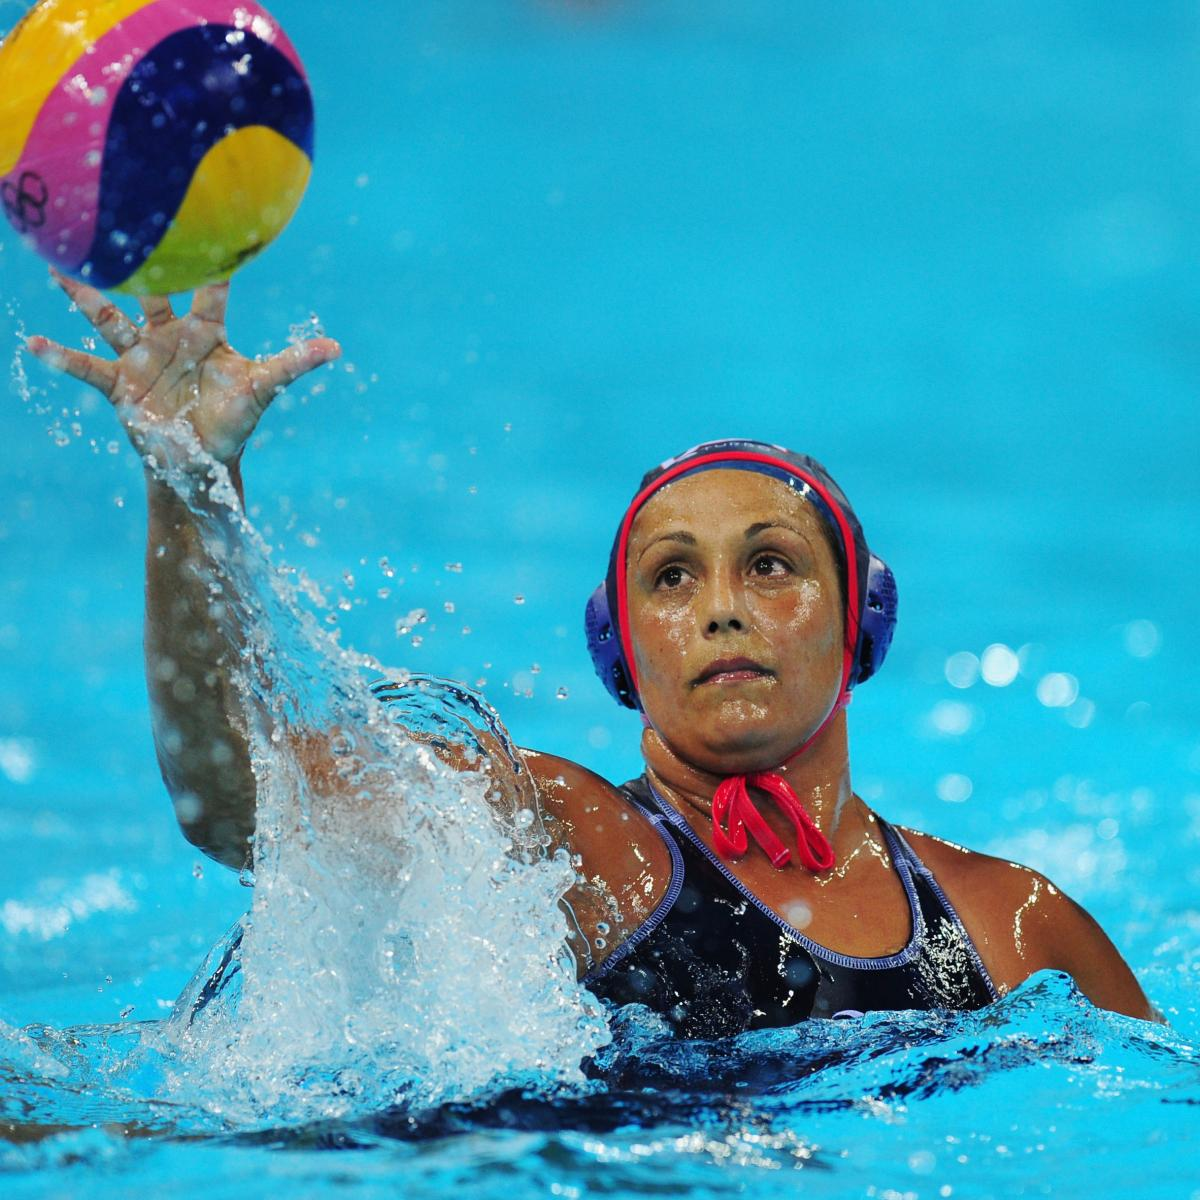 Nbc Botches Coverage By Airing Olympic Womens Water Polo Wardrobe